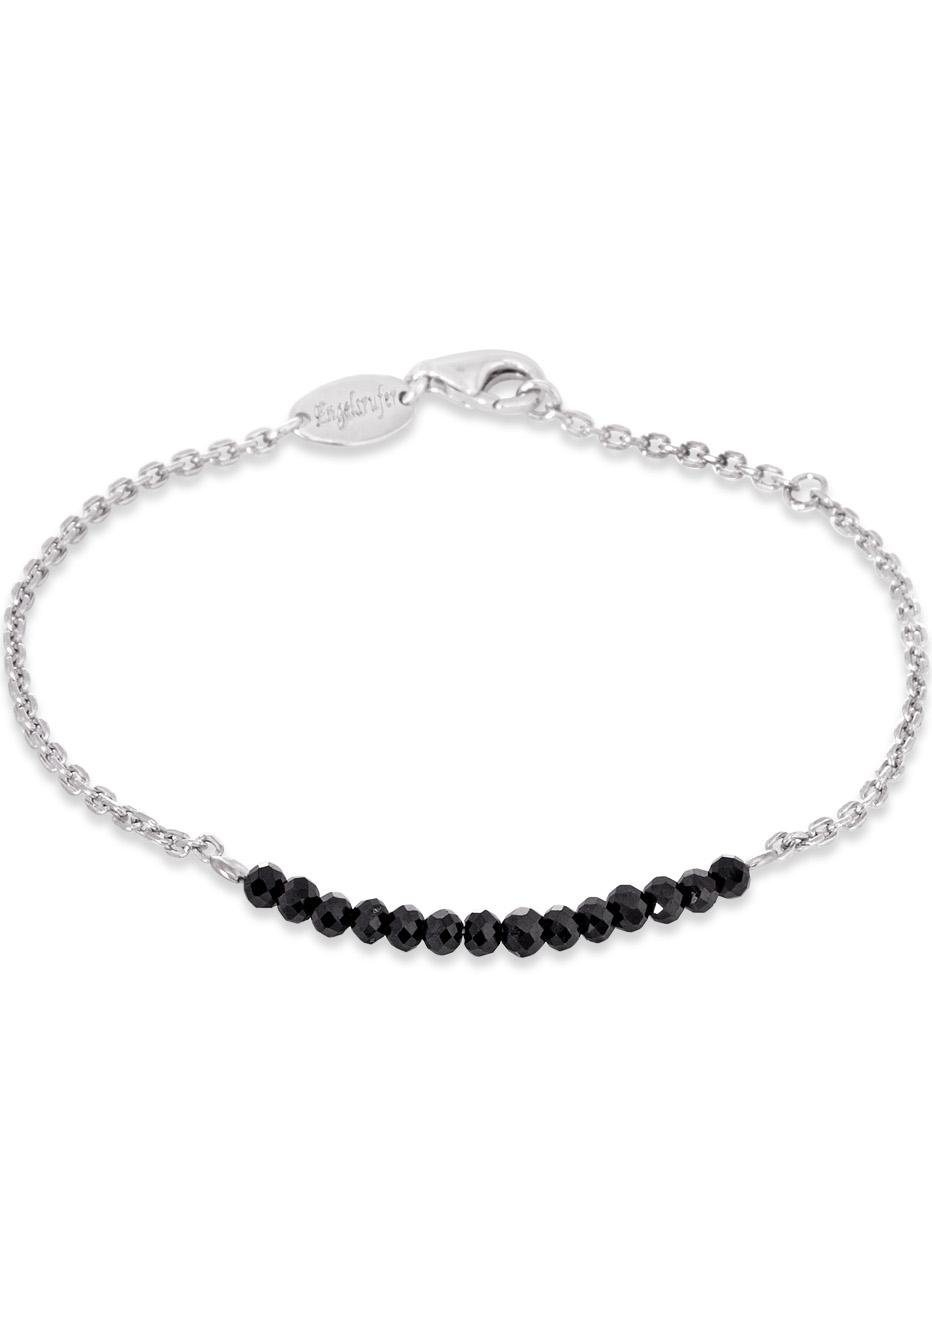 Engelsrufer Silberarmband »Energy of the moon, ARMBAND PLATA BLACK SPINAL, ERB-18-PLATA-BS« mit Spinellen | Schmuck > Armbänder > Silberarmbänder | Silber | Engelsrufer